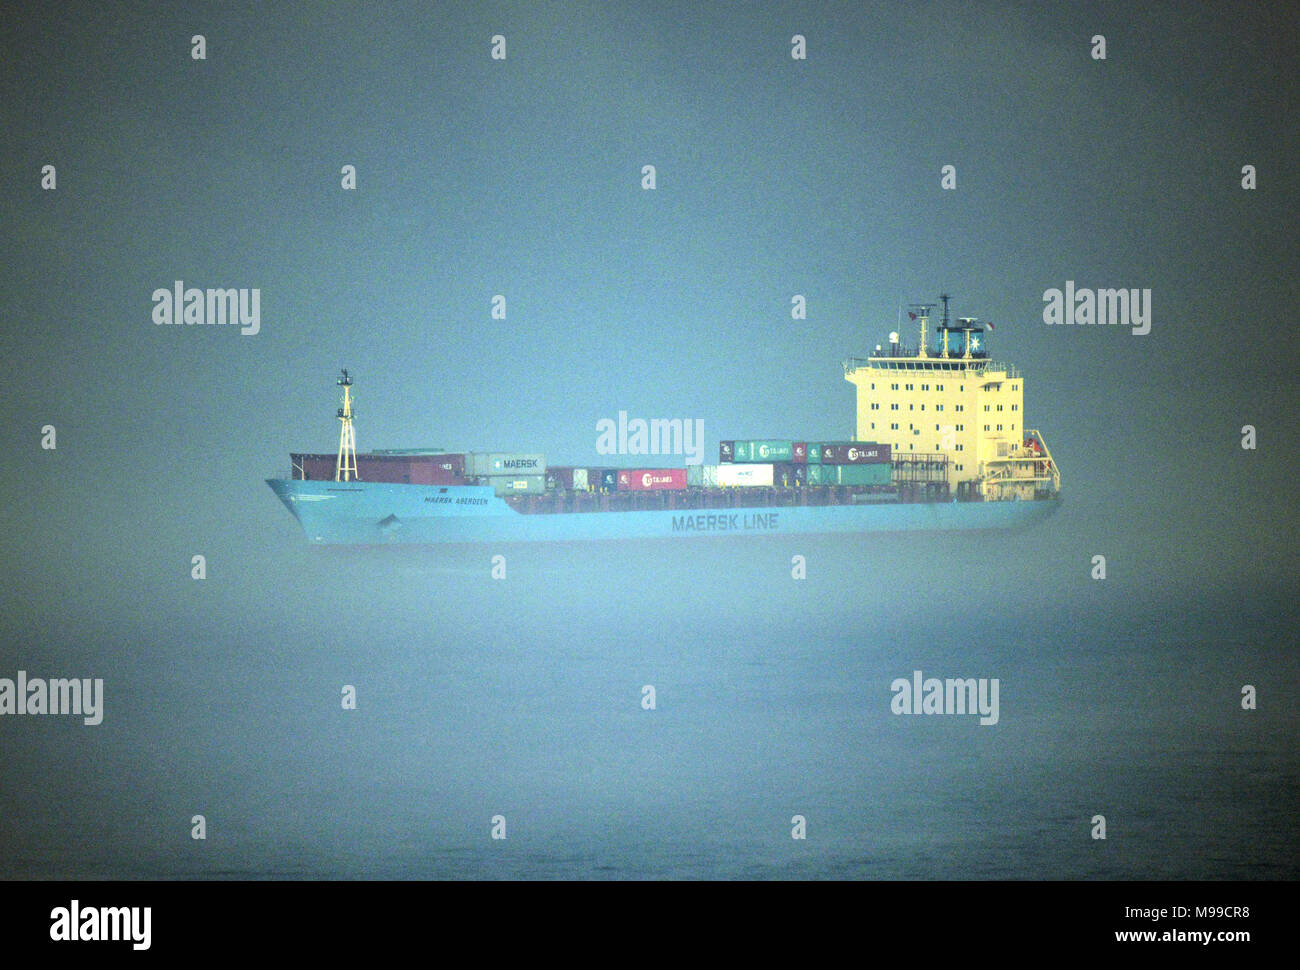 A MAERSK container ship in the fog. - Stock Image